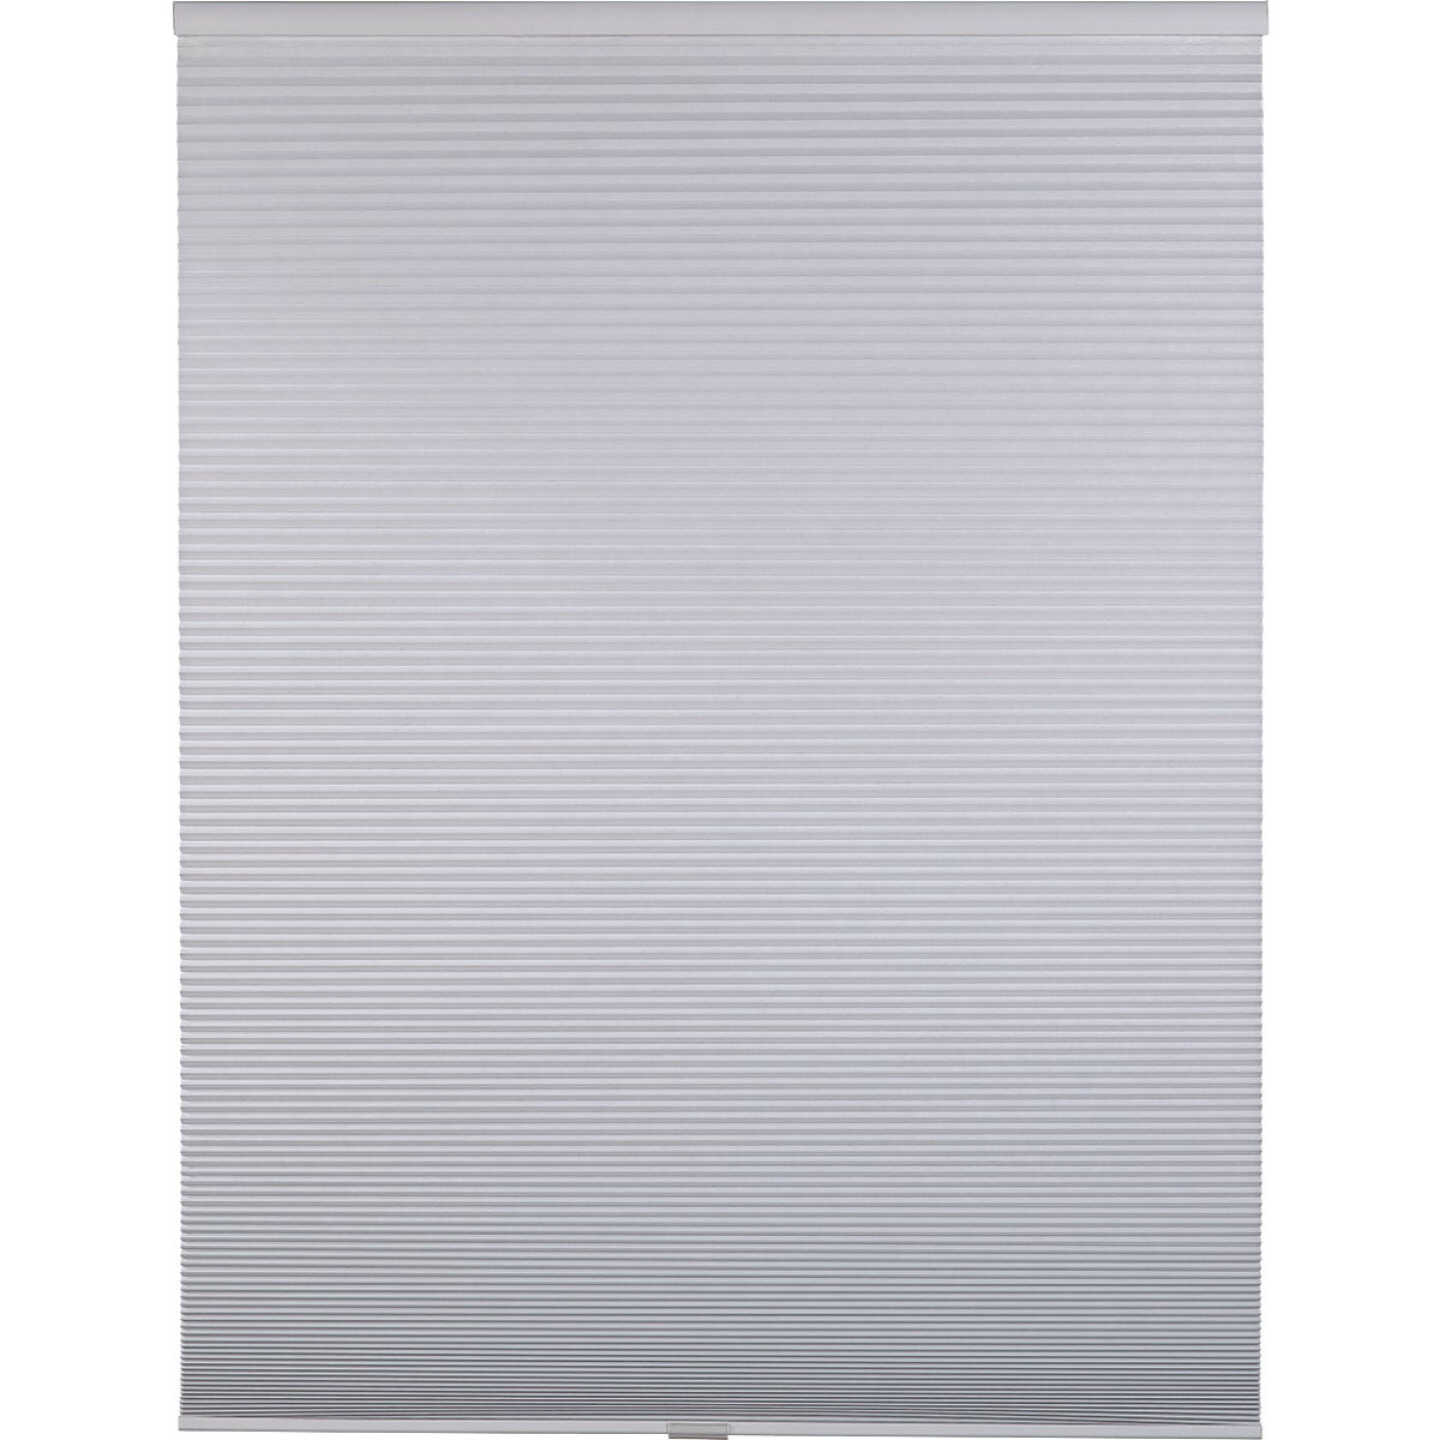 Home Impressions 1 In. Room Darkening Cellular White 48 In. x 72 In. Cordless Shade Image 1